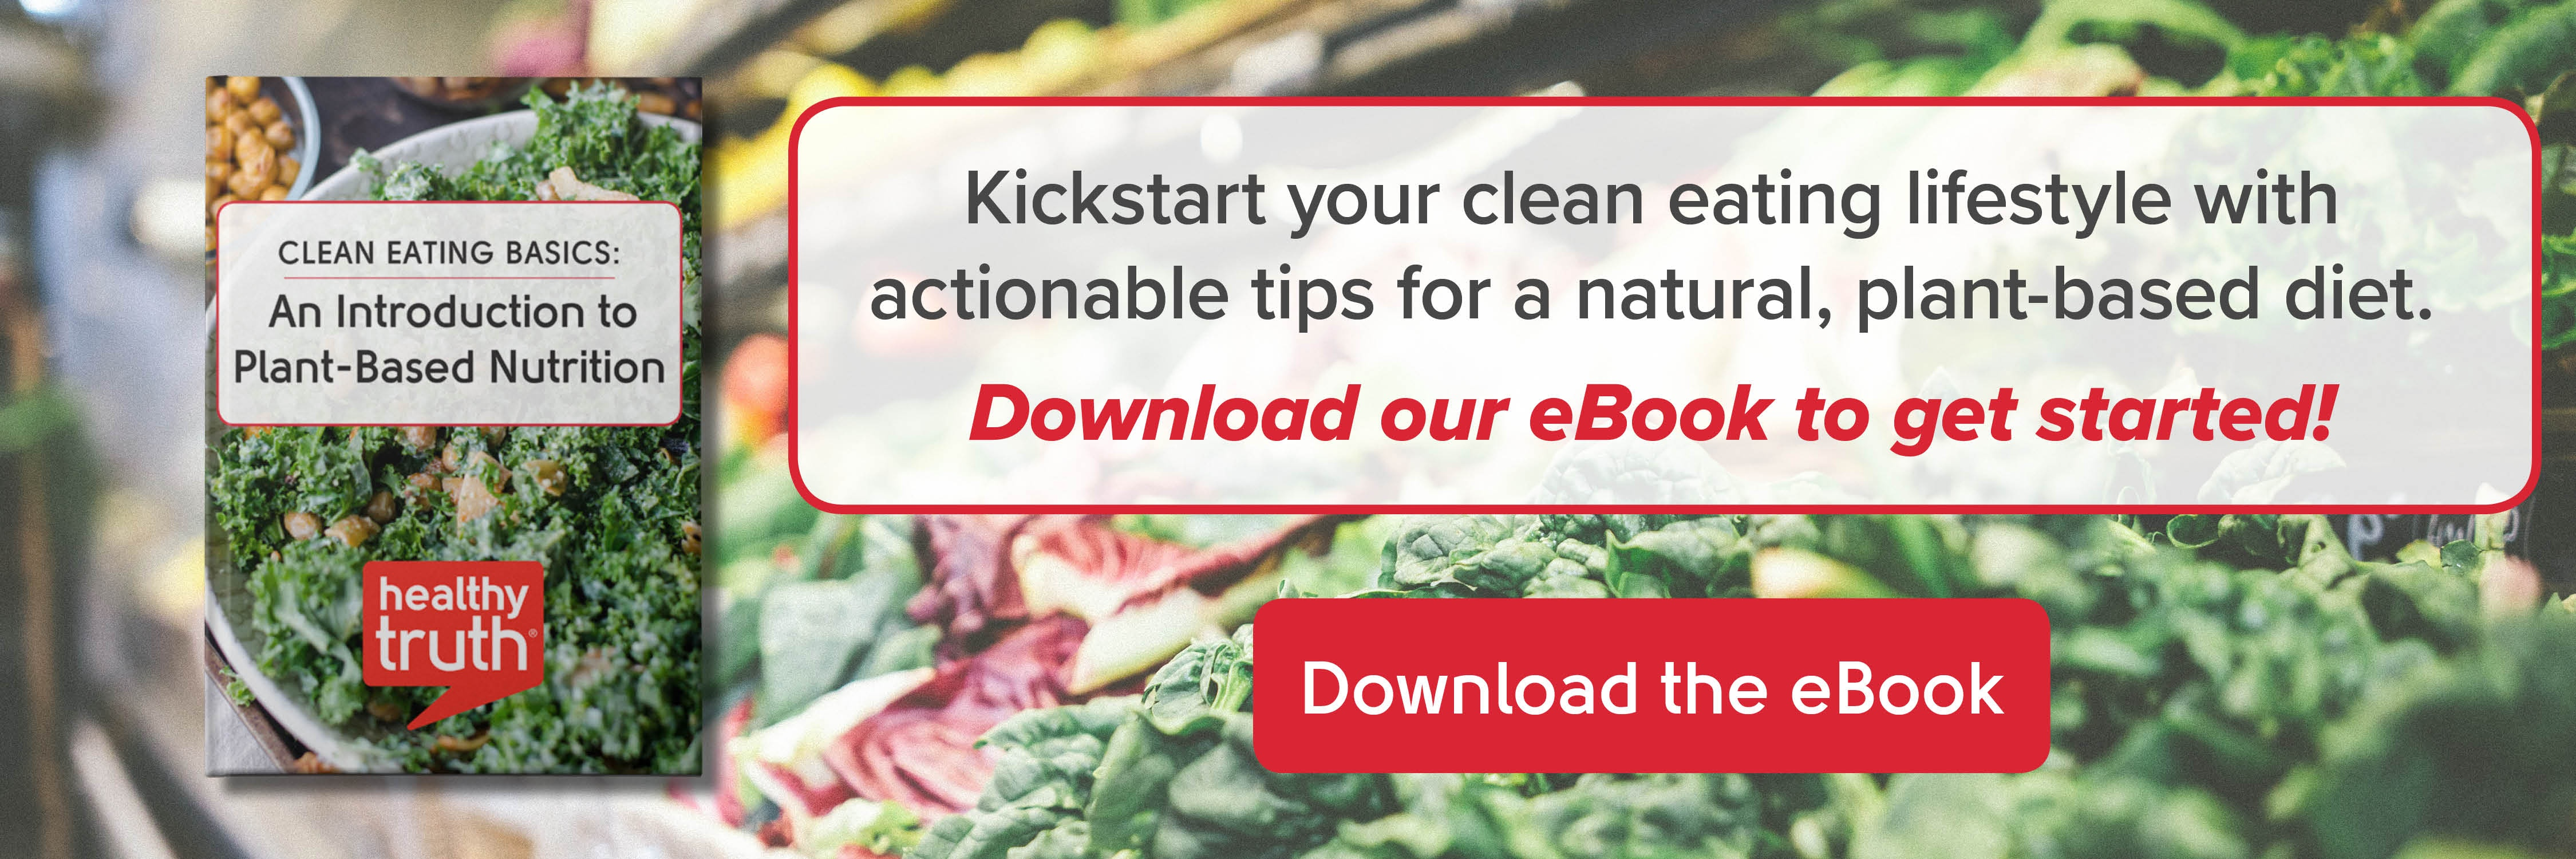 Clean Eating Basics An Introduction to Plant Based Nutrition